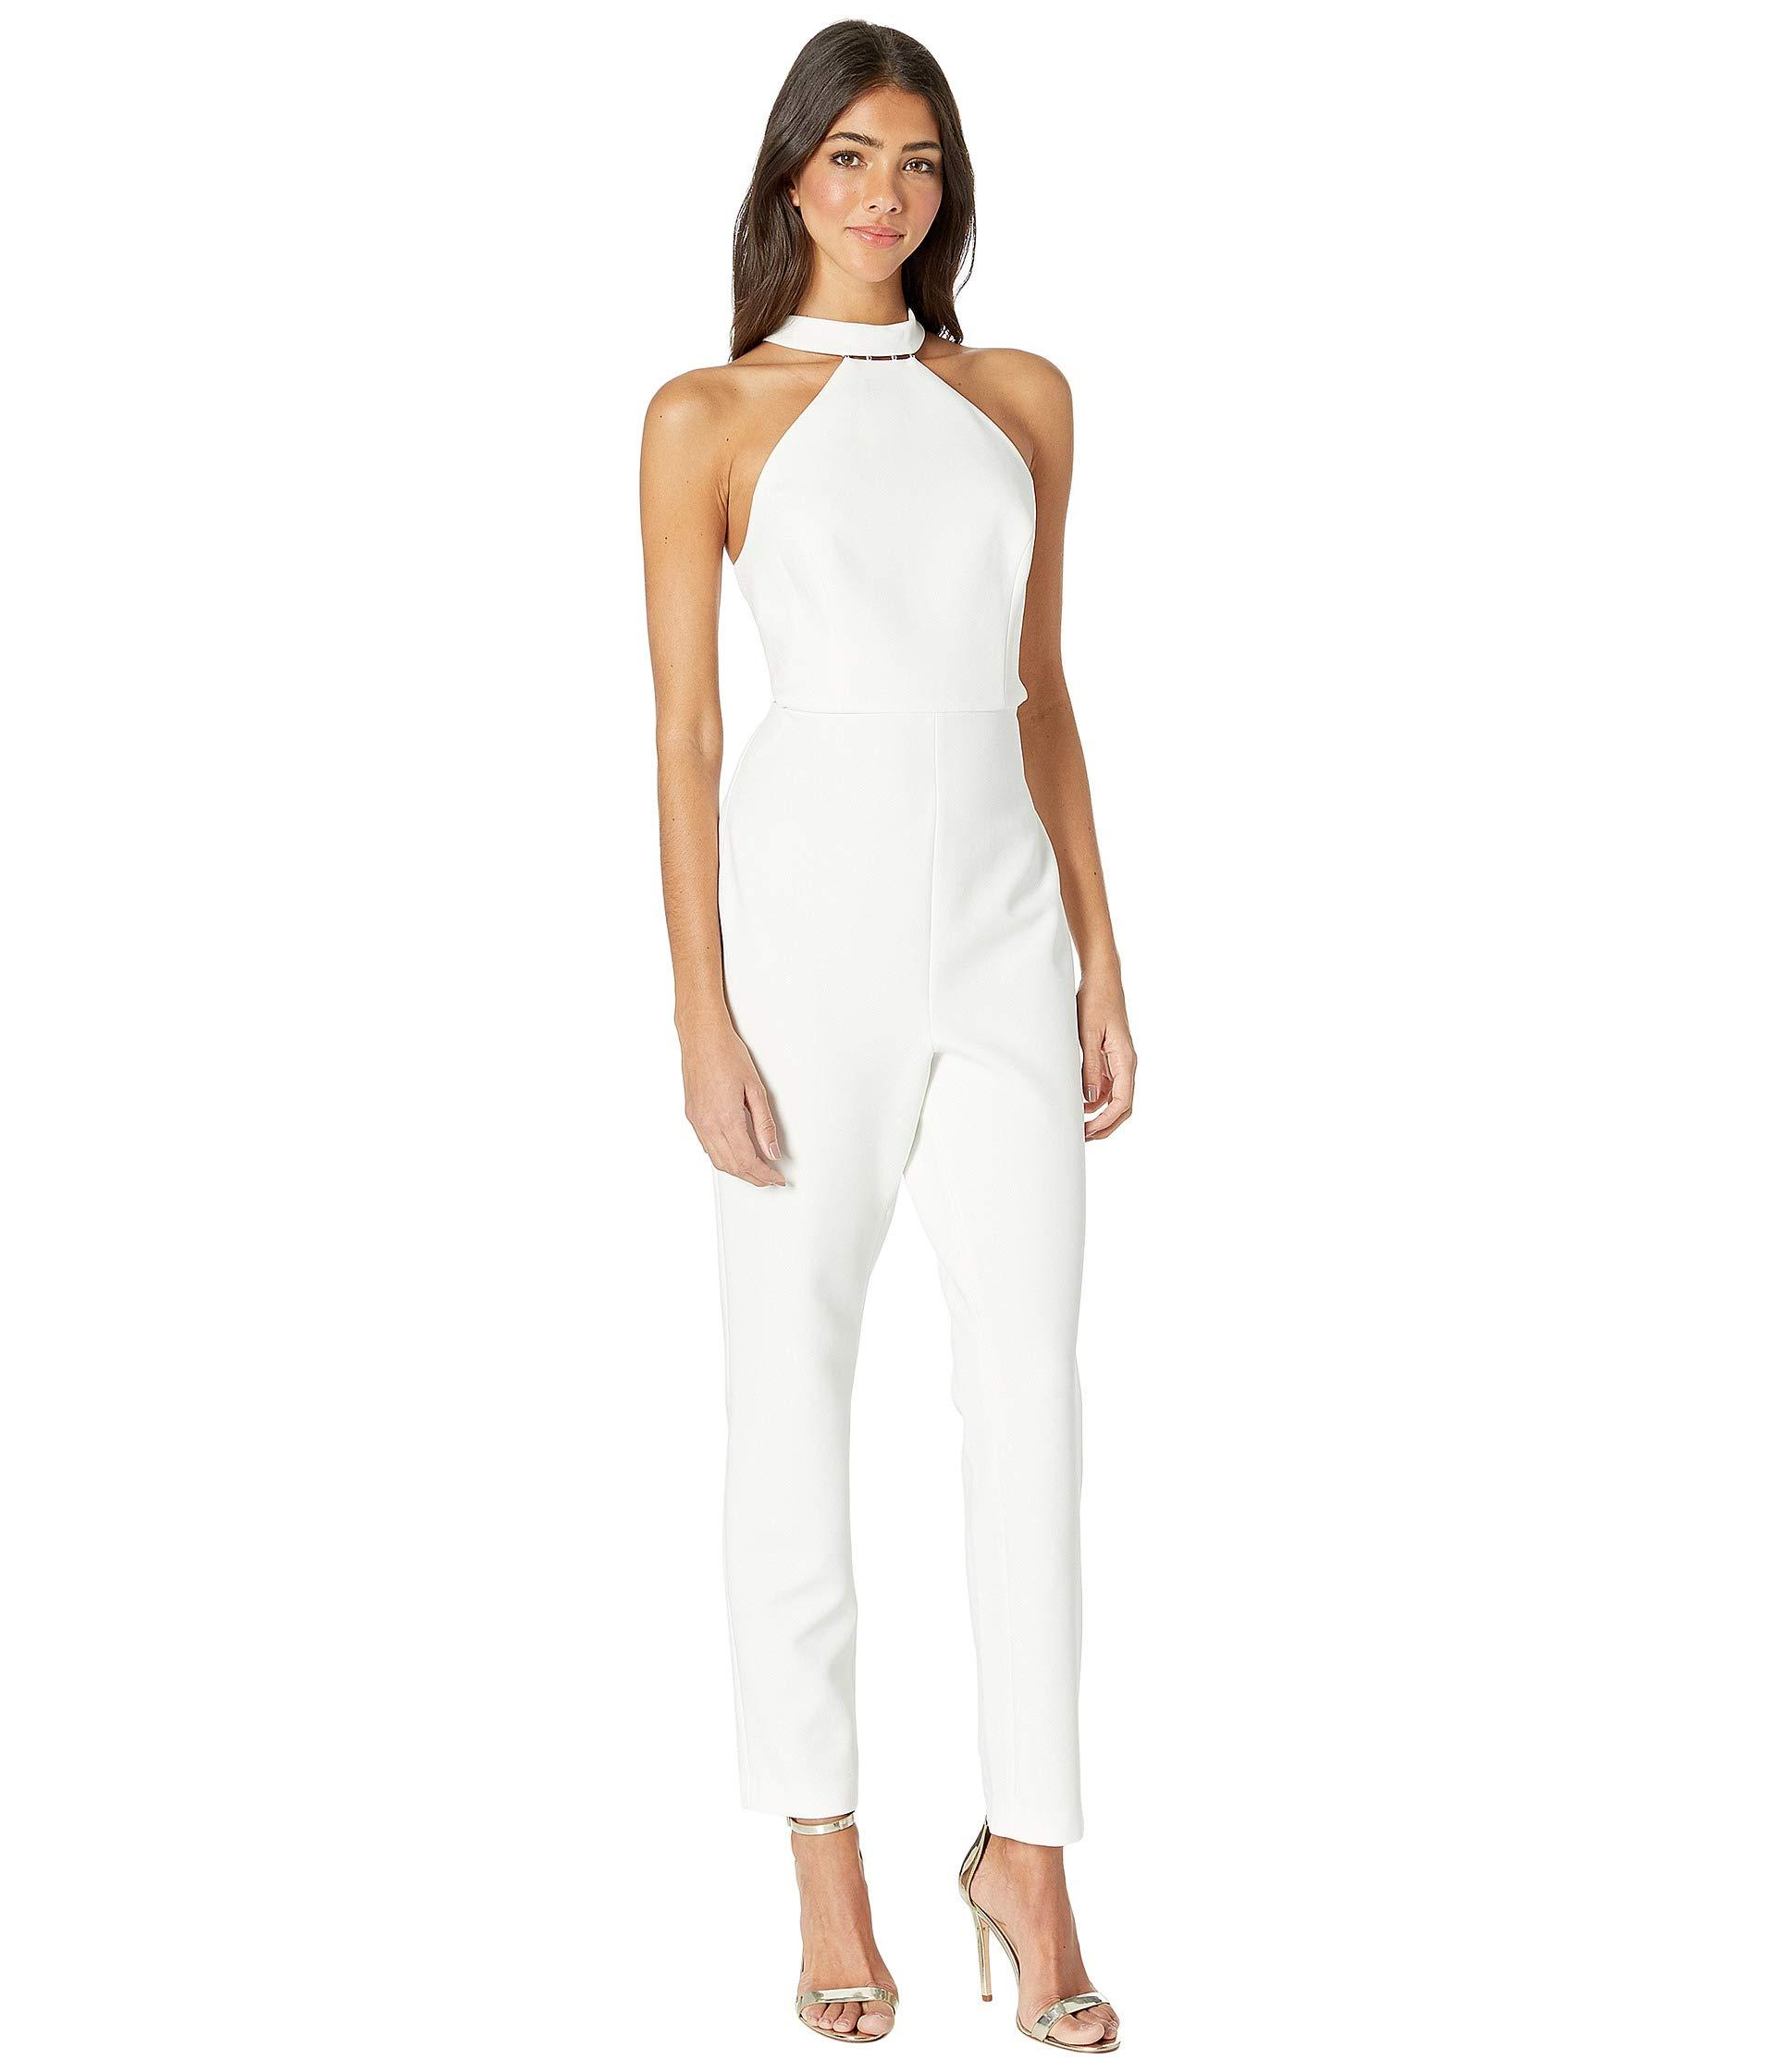 a31e15d88ac Lyst - BCBGMAXAZRIA Beaded Halter Cropped Jumpsuit (off-white ...